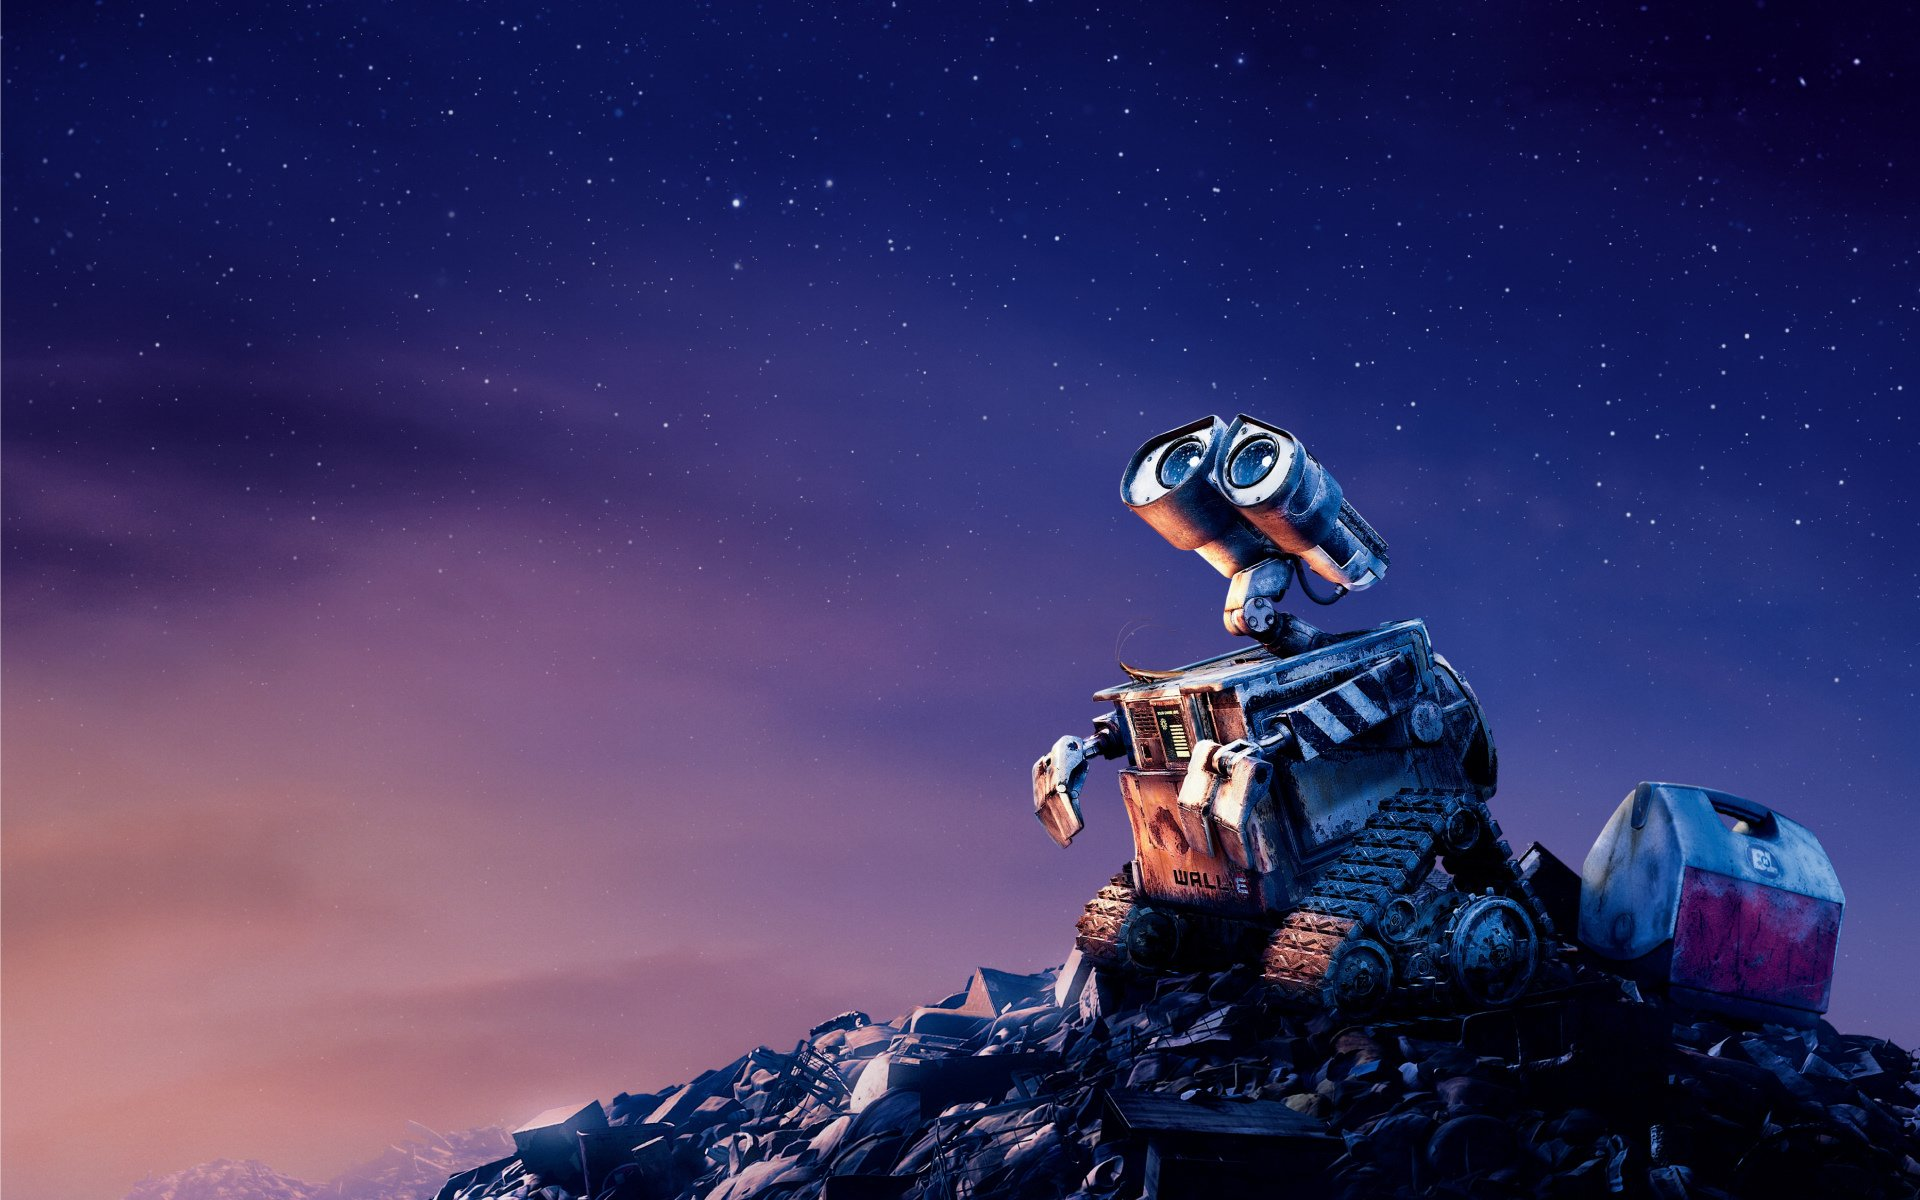 Wall E 2 | Beyond The Box Set | Best Movie Podcasts